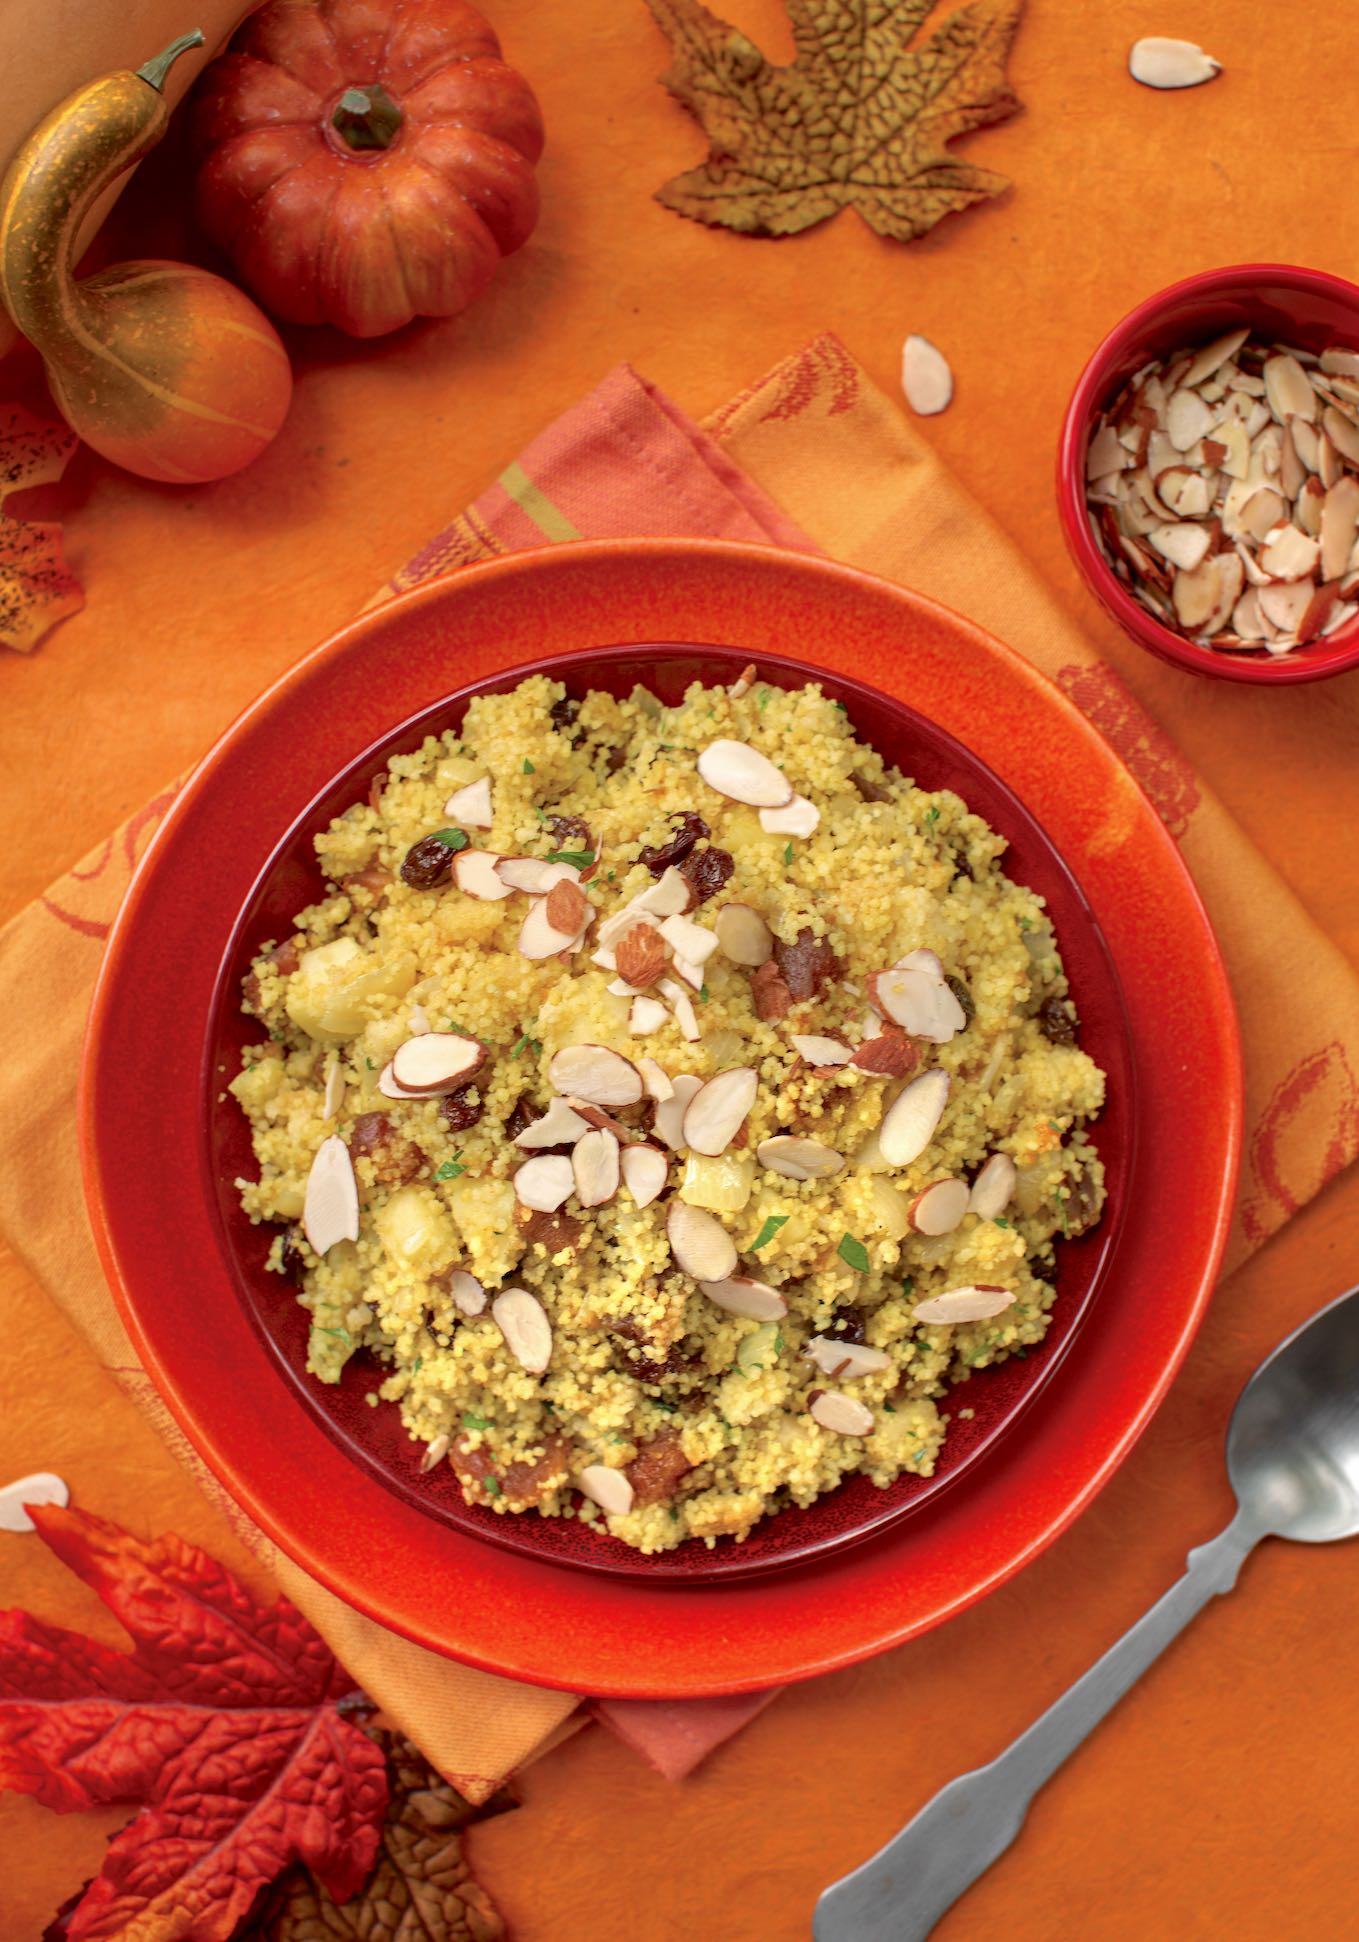 Couscous pilaf with apple, nuts, & fruits